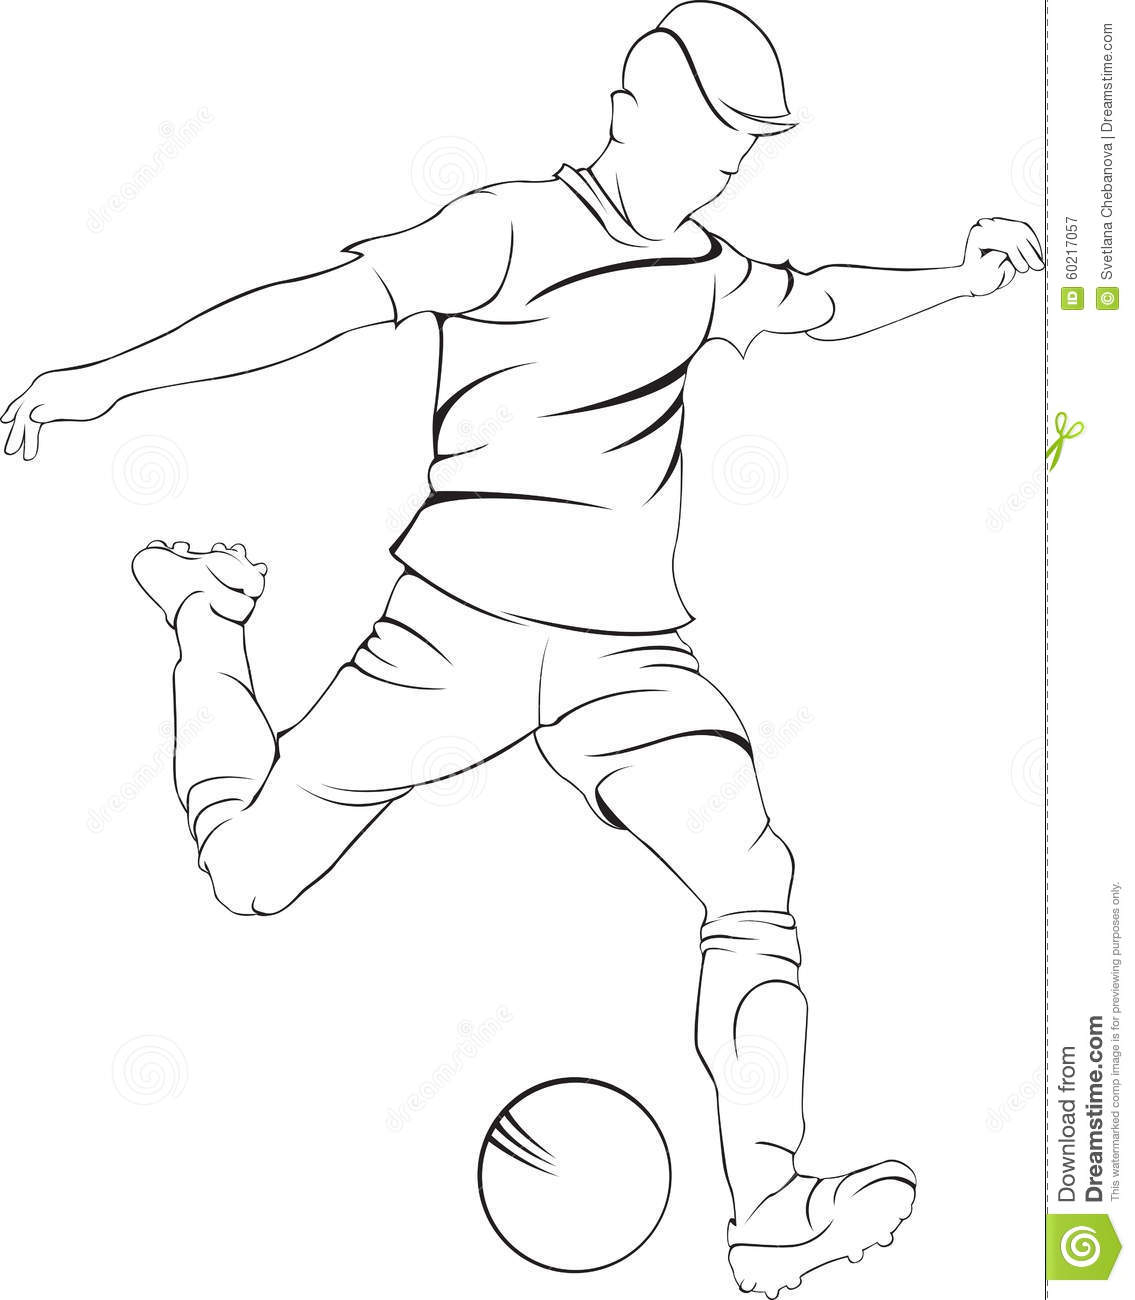 drawing of football players football drawing easy at getdrawings free download drawing football players of